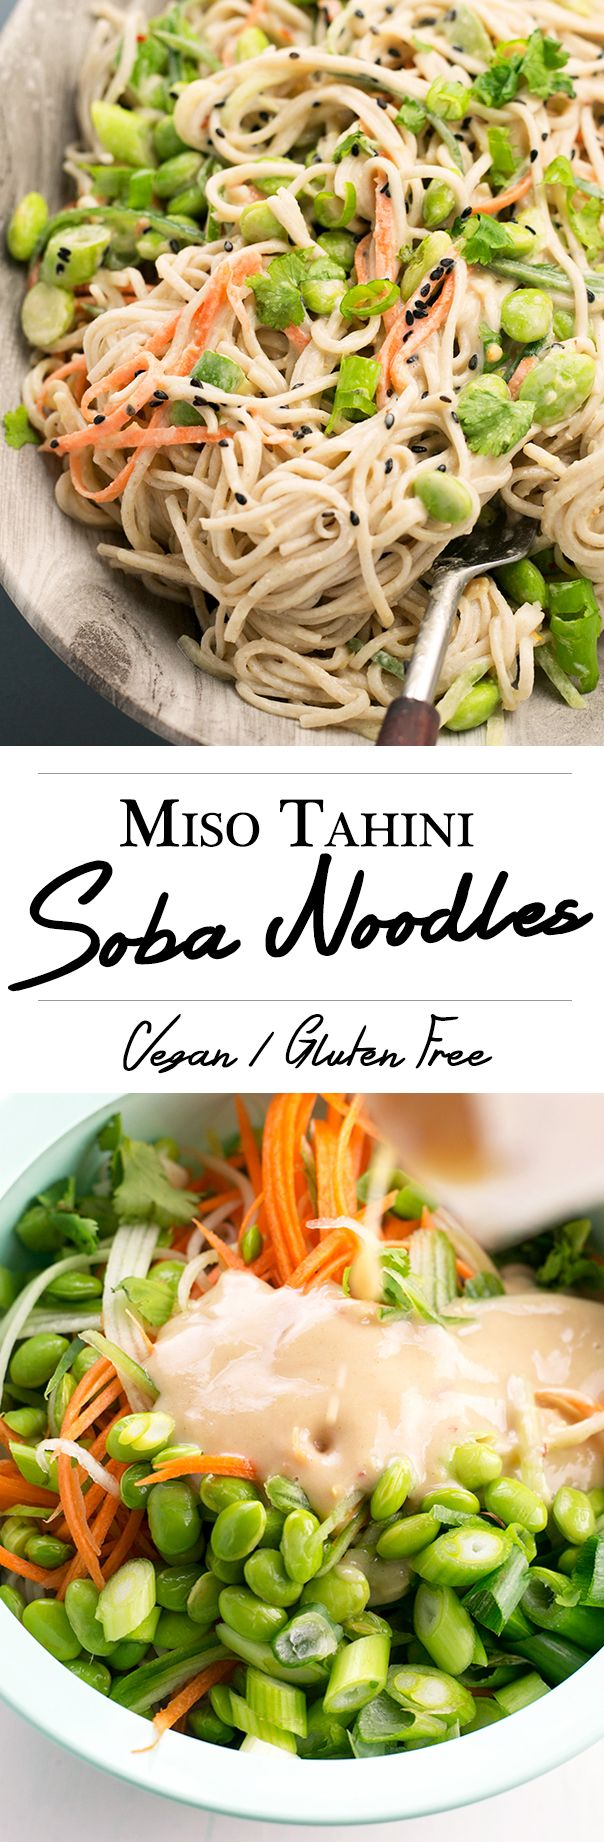 Japanese inspired Soba Noodles with edamame, carrot and cucumber - tossed in a delicious Miso Tahini Dressing. I would replace the edamame. I hate edamame.